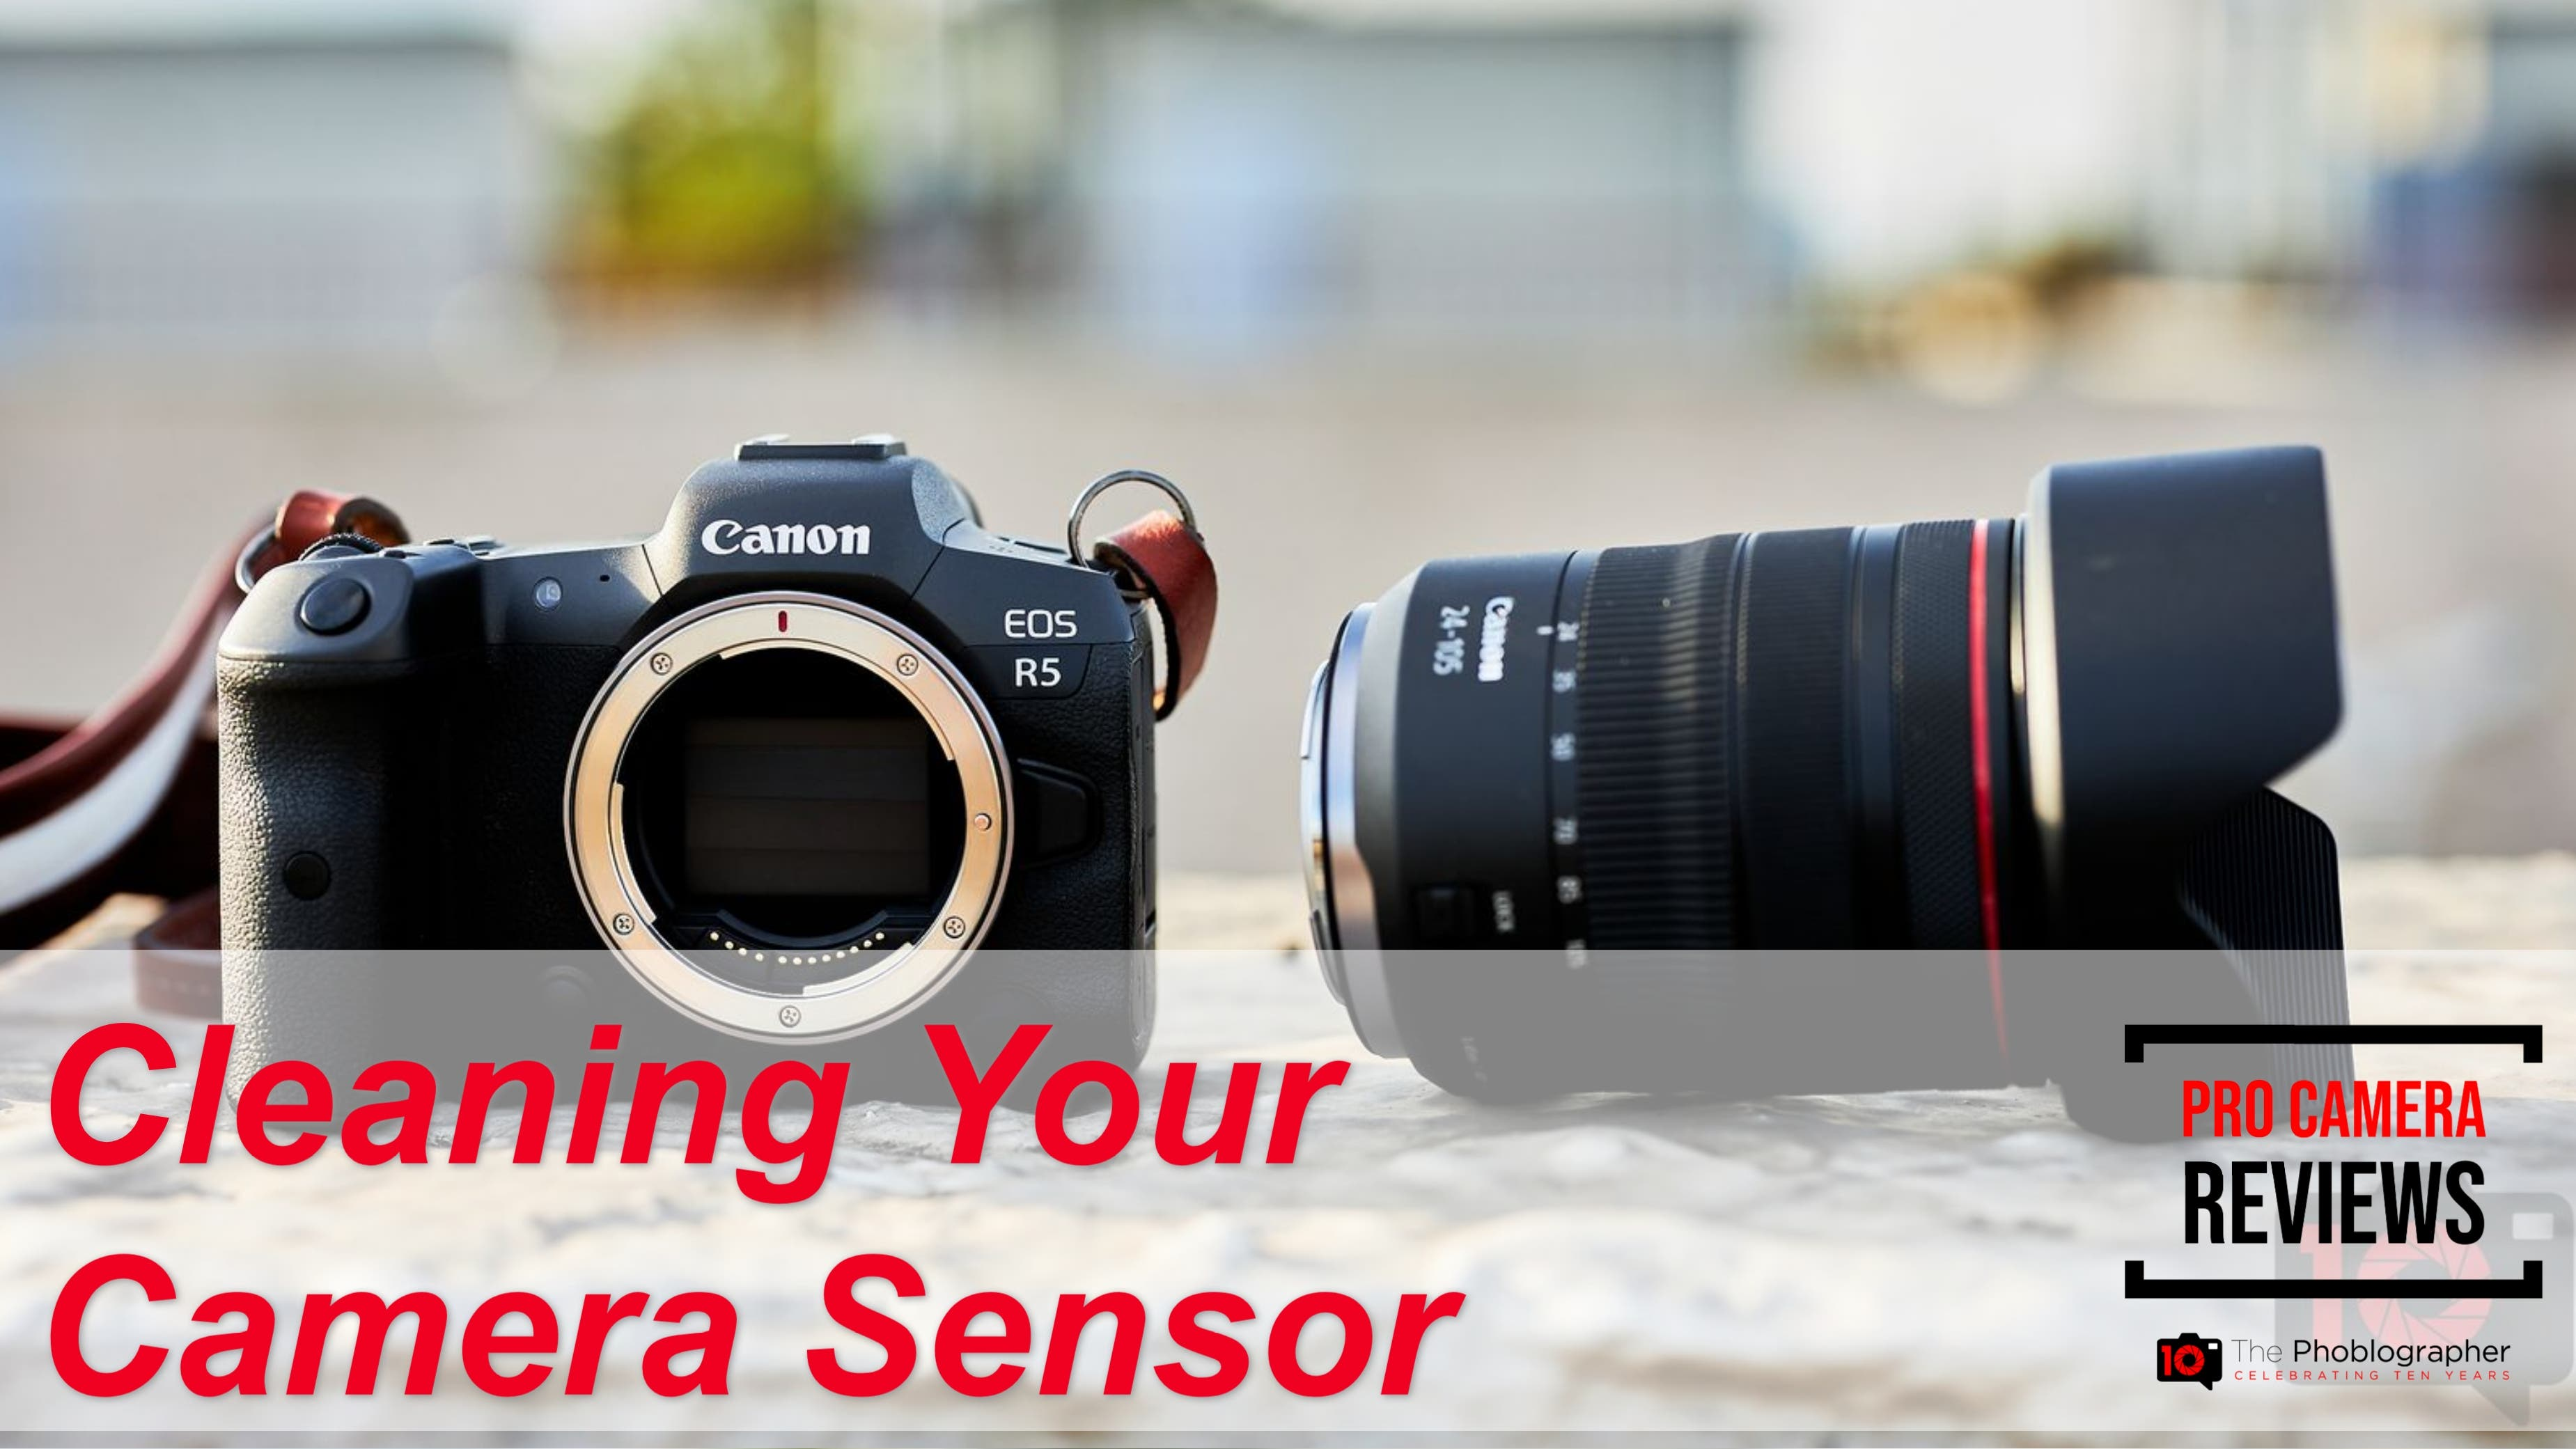 Don't Be Afraid! Cleaning Your Camera Sensor the Right Way